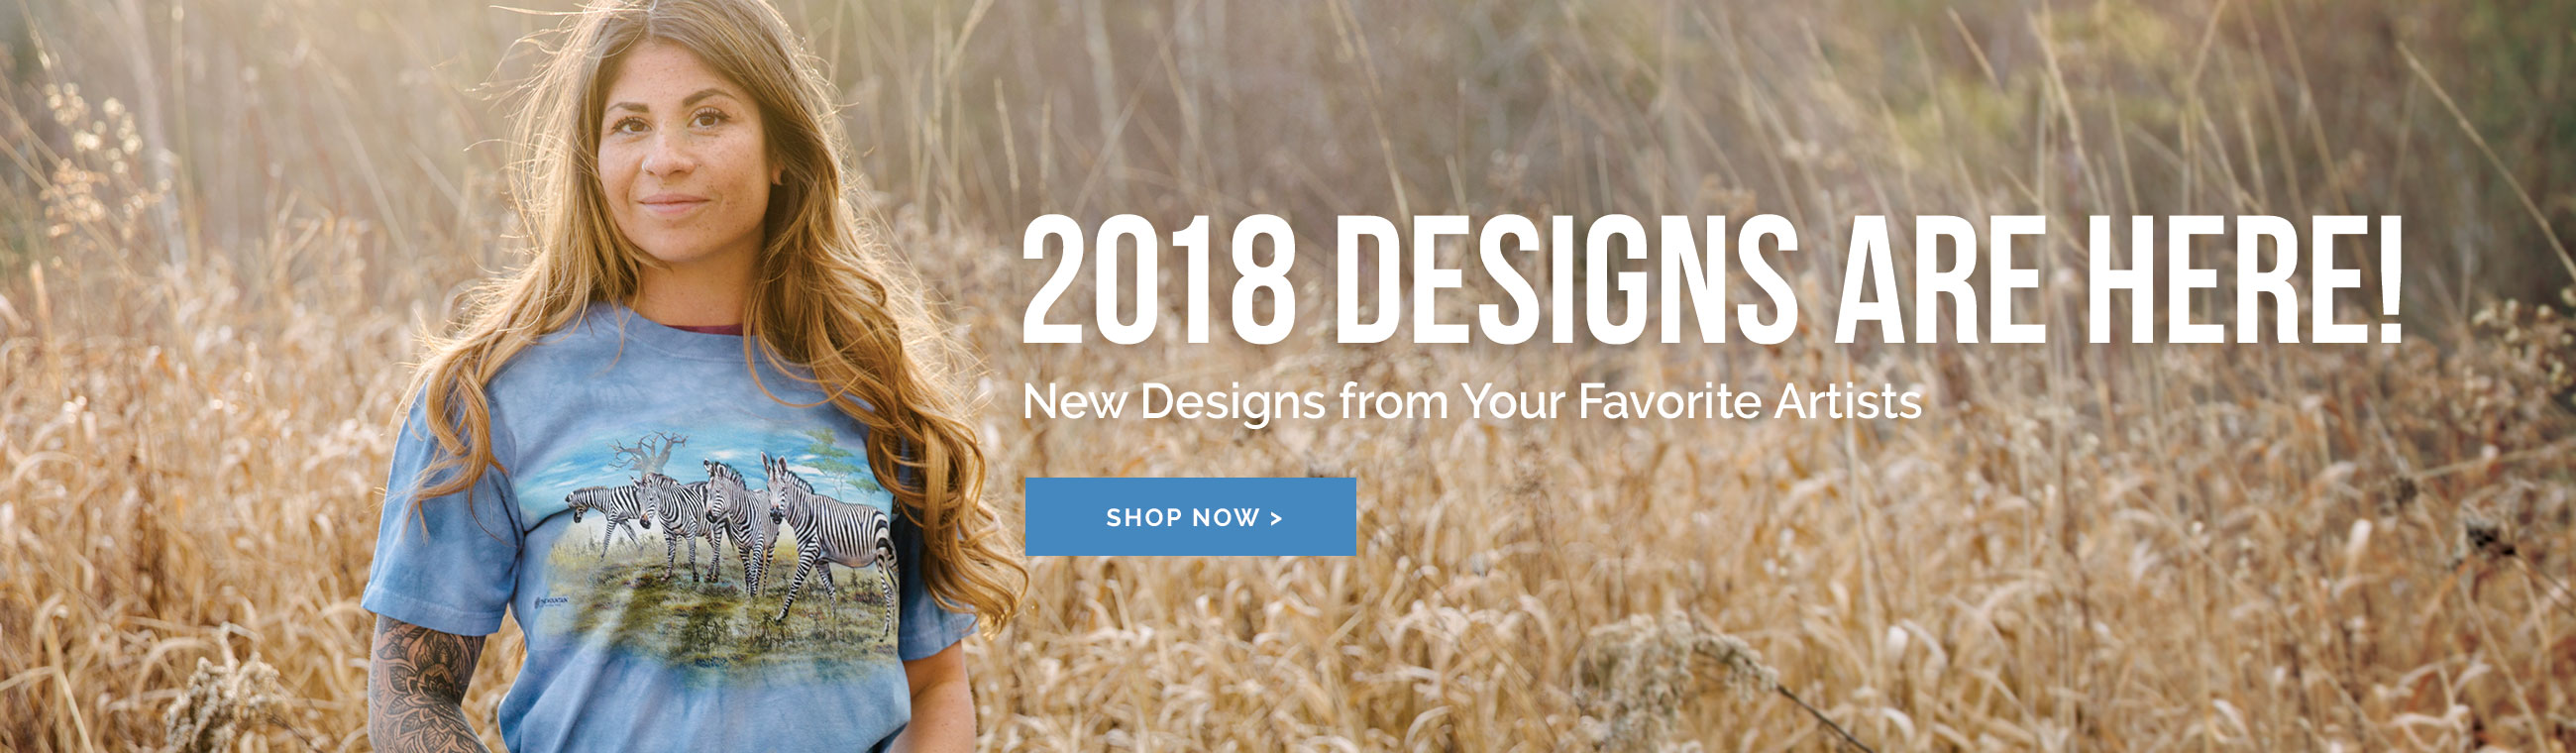 Shop New Designs for 2018